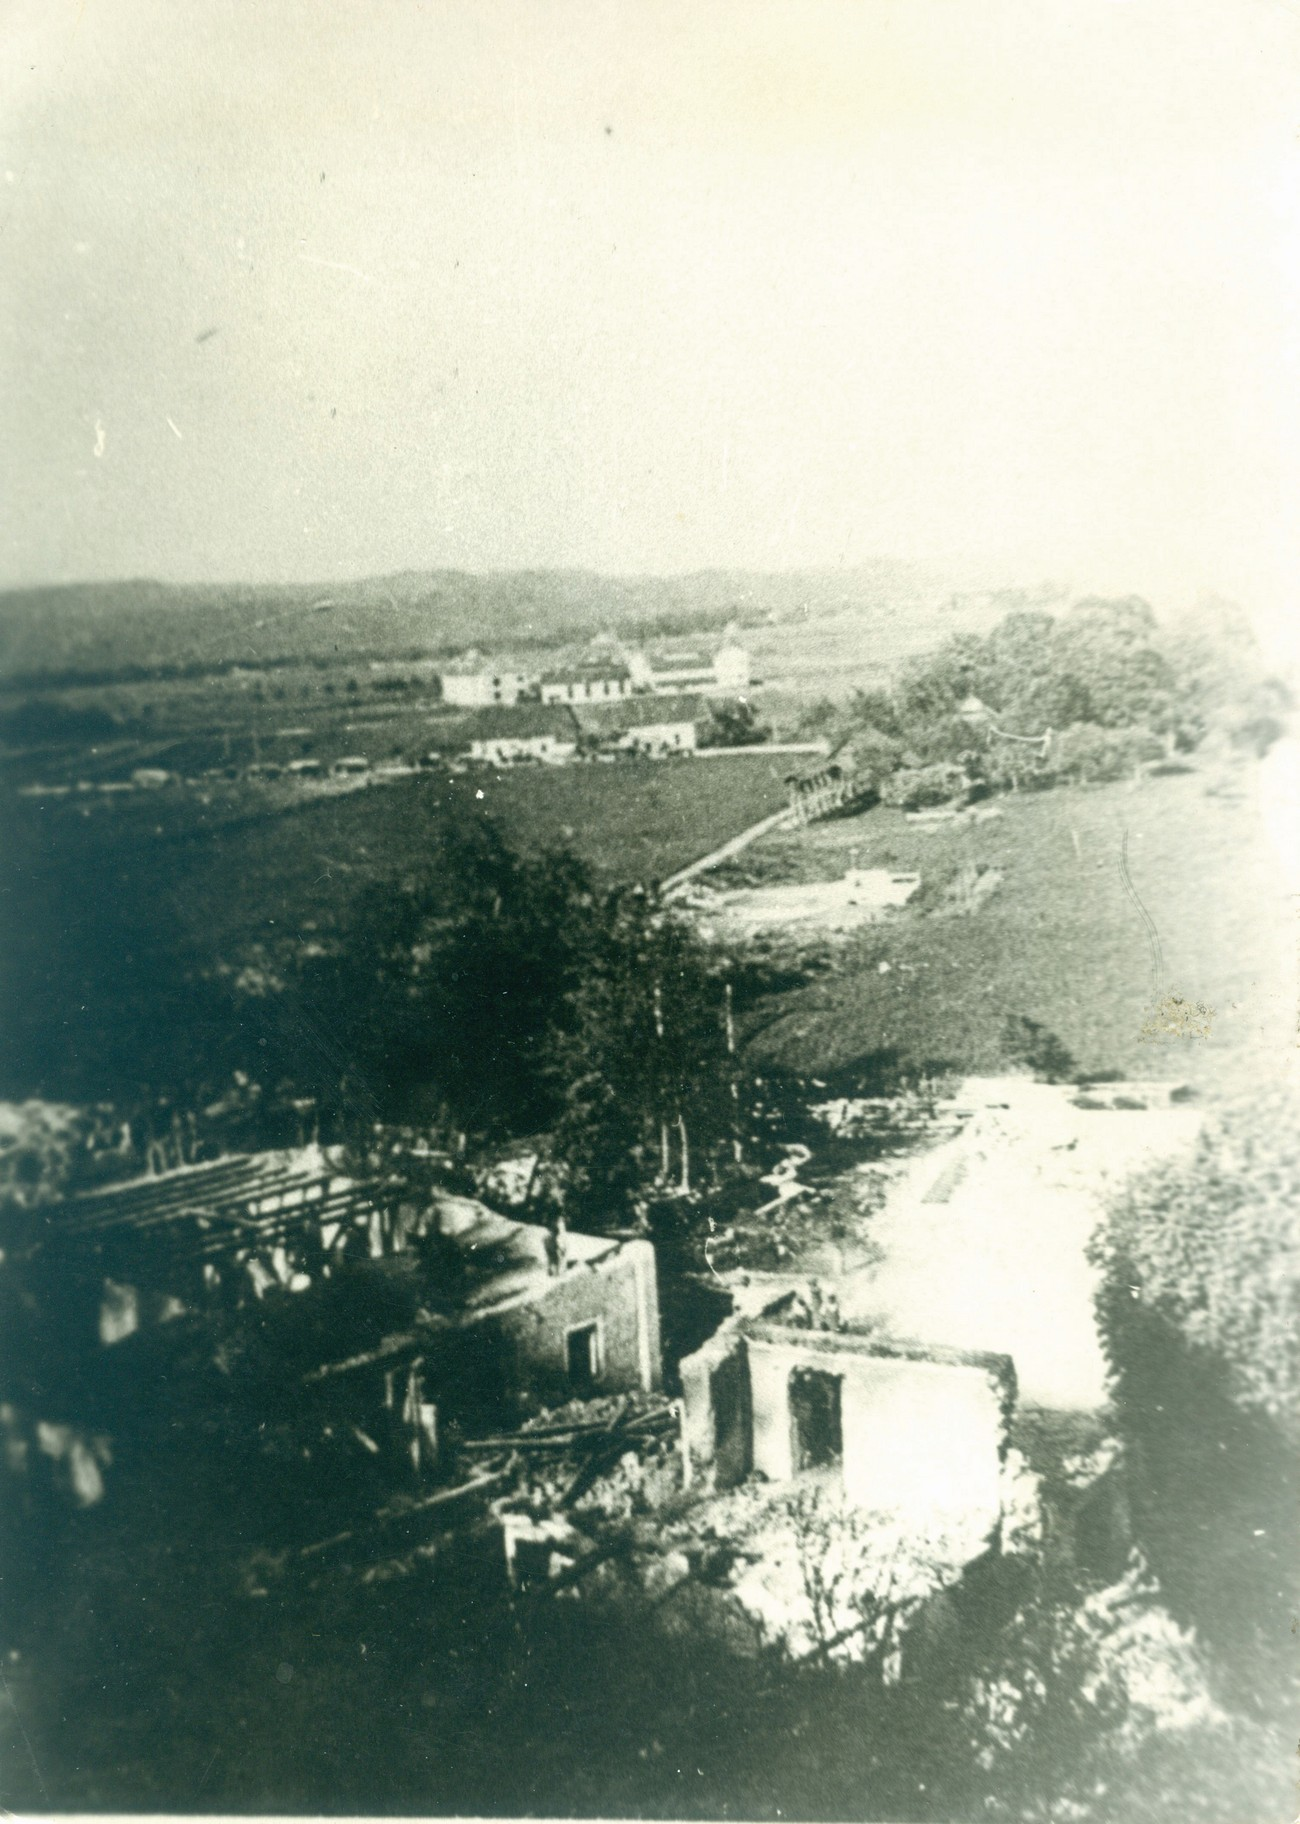 Demolition of the houses on the Italian–German border in Podgora on present-day Cesta Andreja Bitenca. Germans also demolished Zalokar's house below the Italian–German border crossing. The meadows and fields in the background have been developed after the war; today, this is Cesta Andreja Bitenca. In the background is the junction of Cesta Andreja Bitenca and Celovška cesta where the border crossing between Germany and Italy was located. Author: Tine Bitenc. Archive of Milena Zalokar.